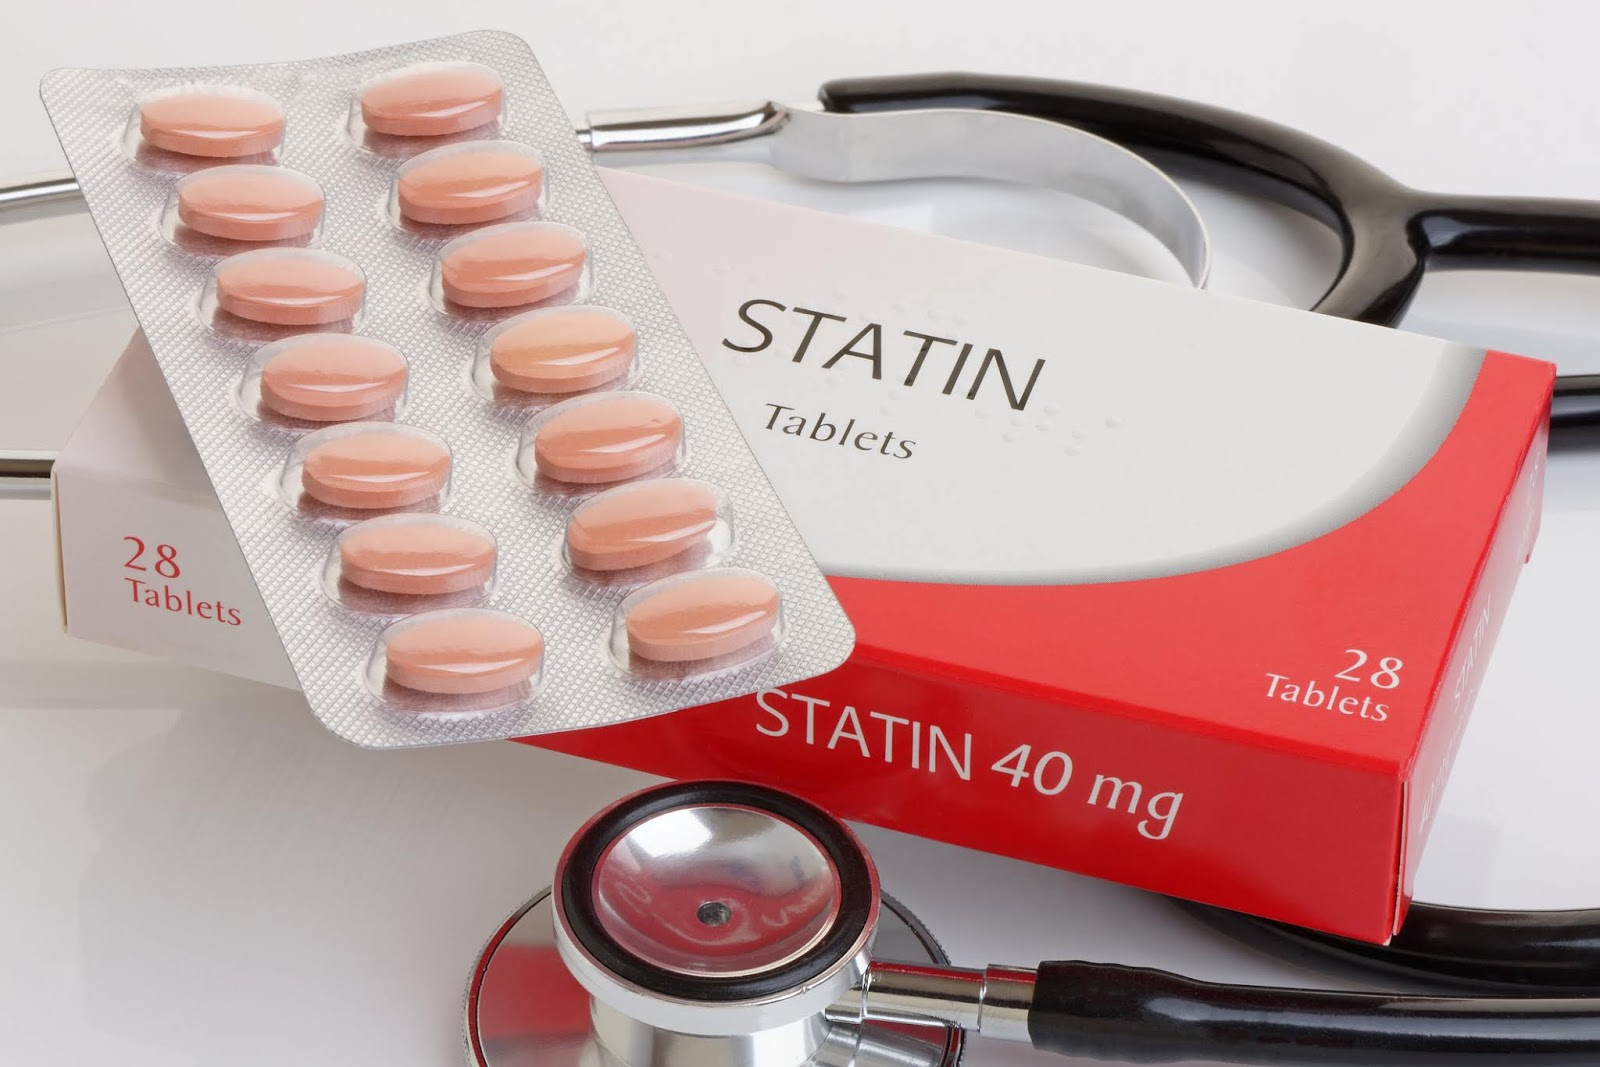 cholesterol, statin, heart disease